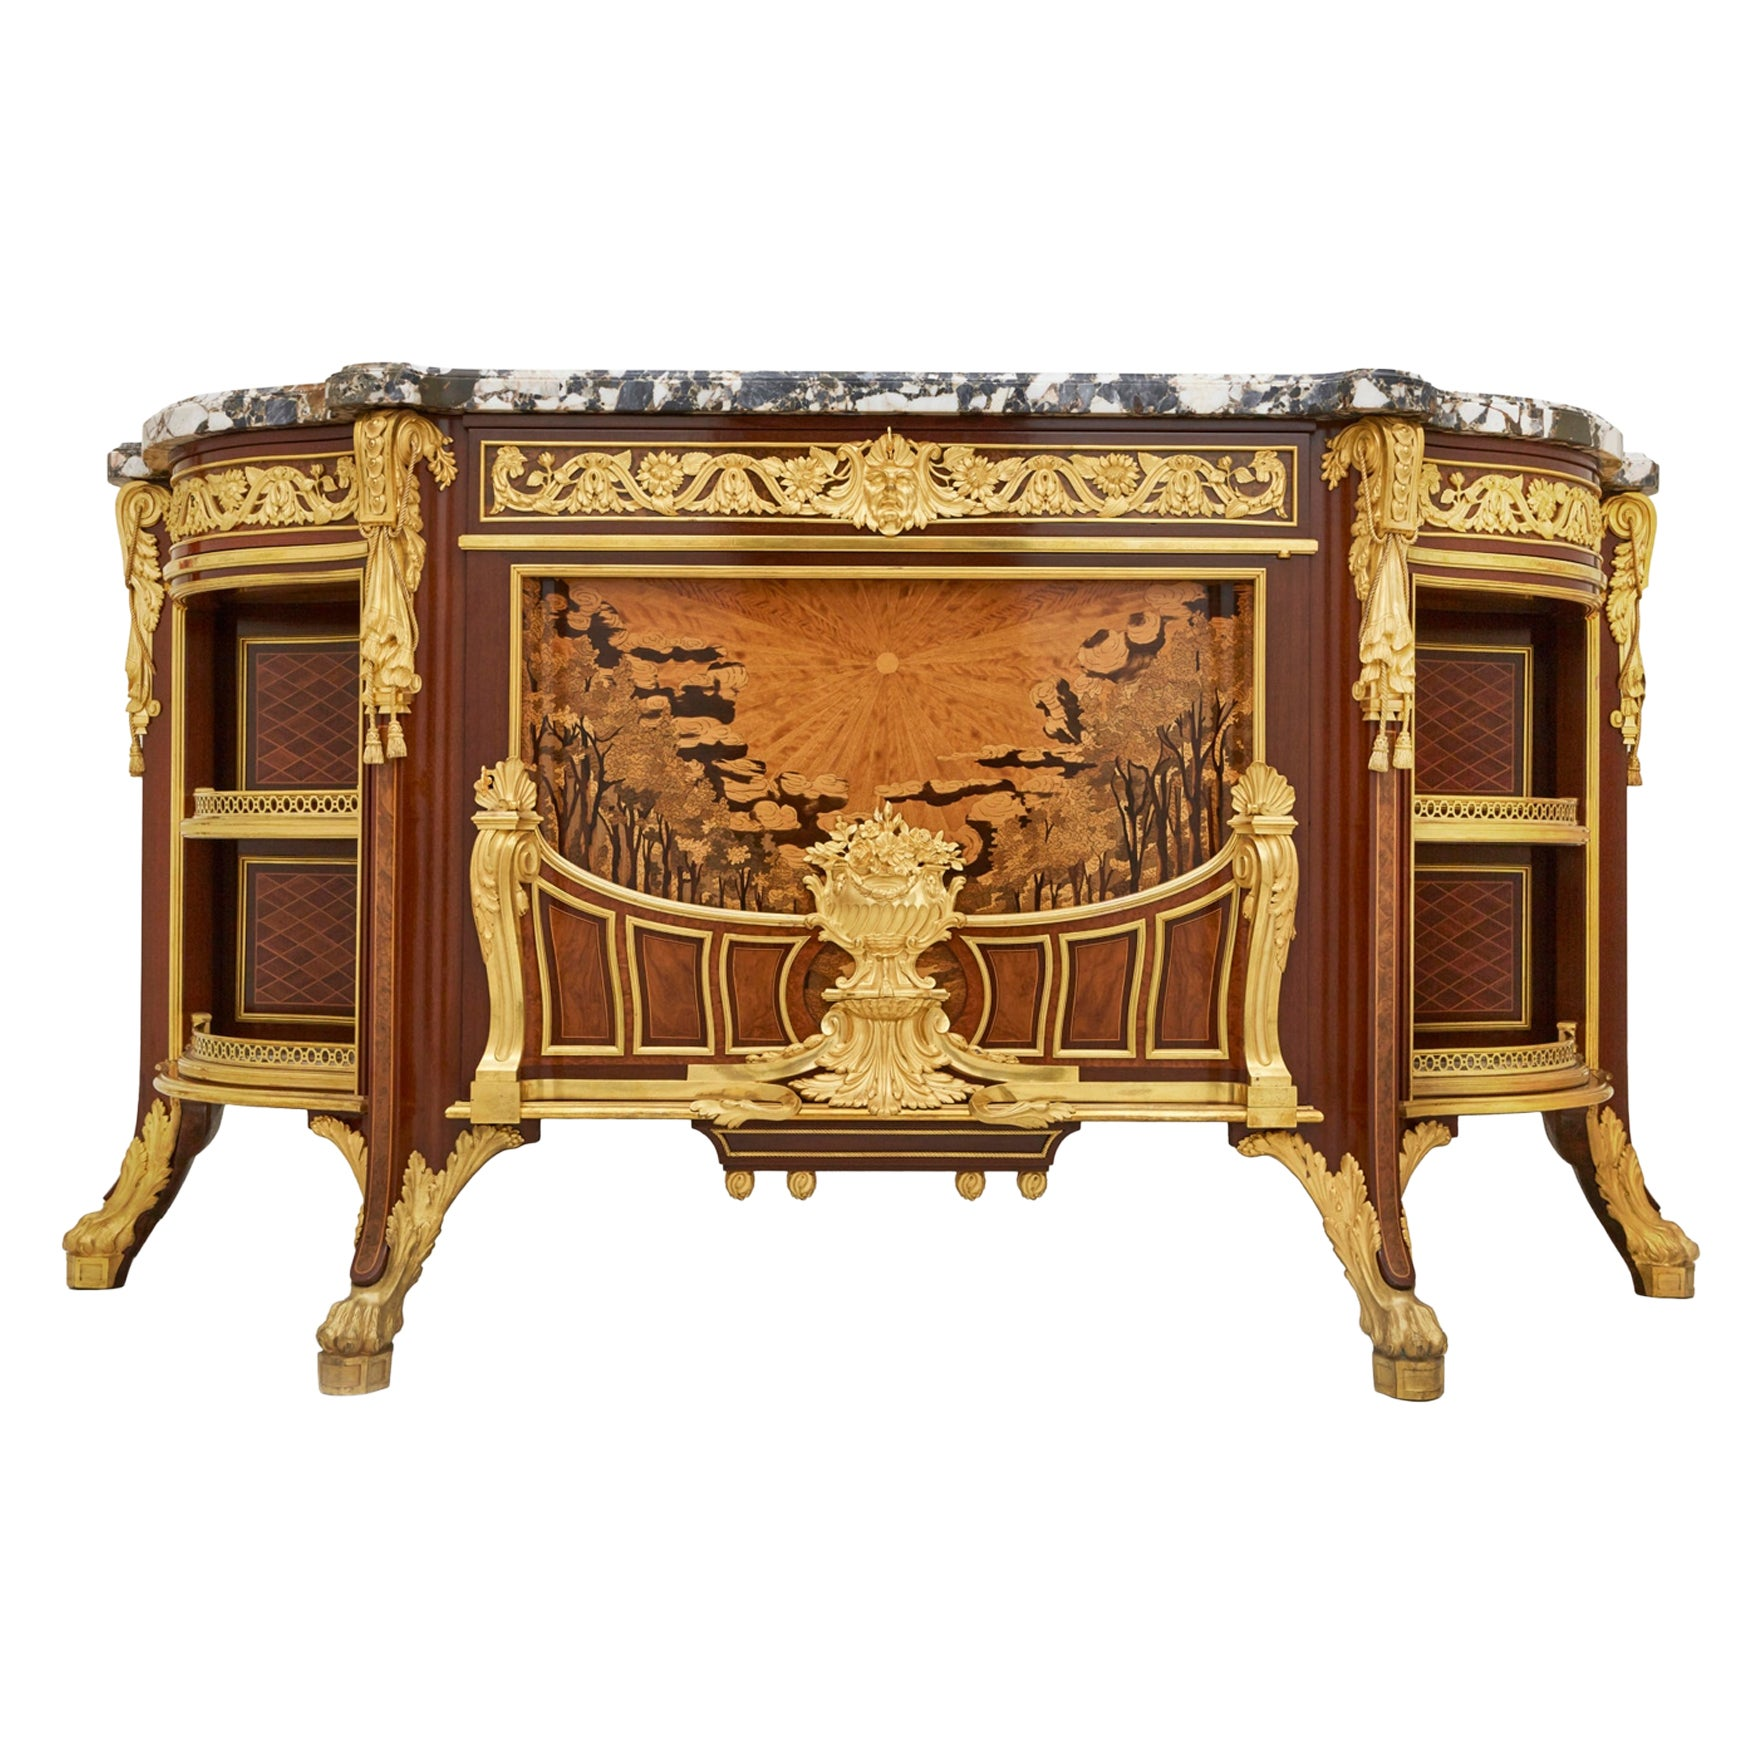 'Meuble Soleil', Gilt Bronze-Mounted Marquetry Commode by Francois Linke